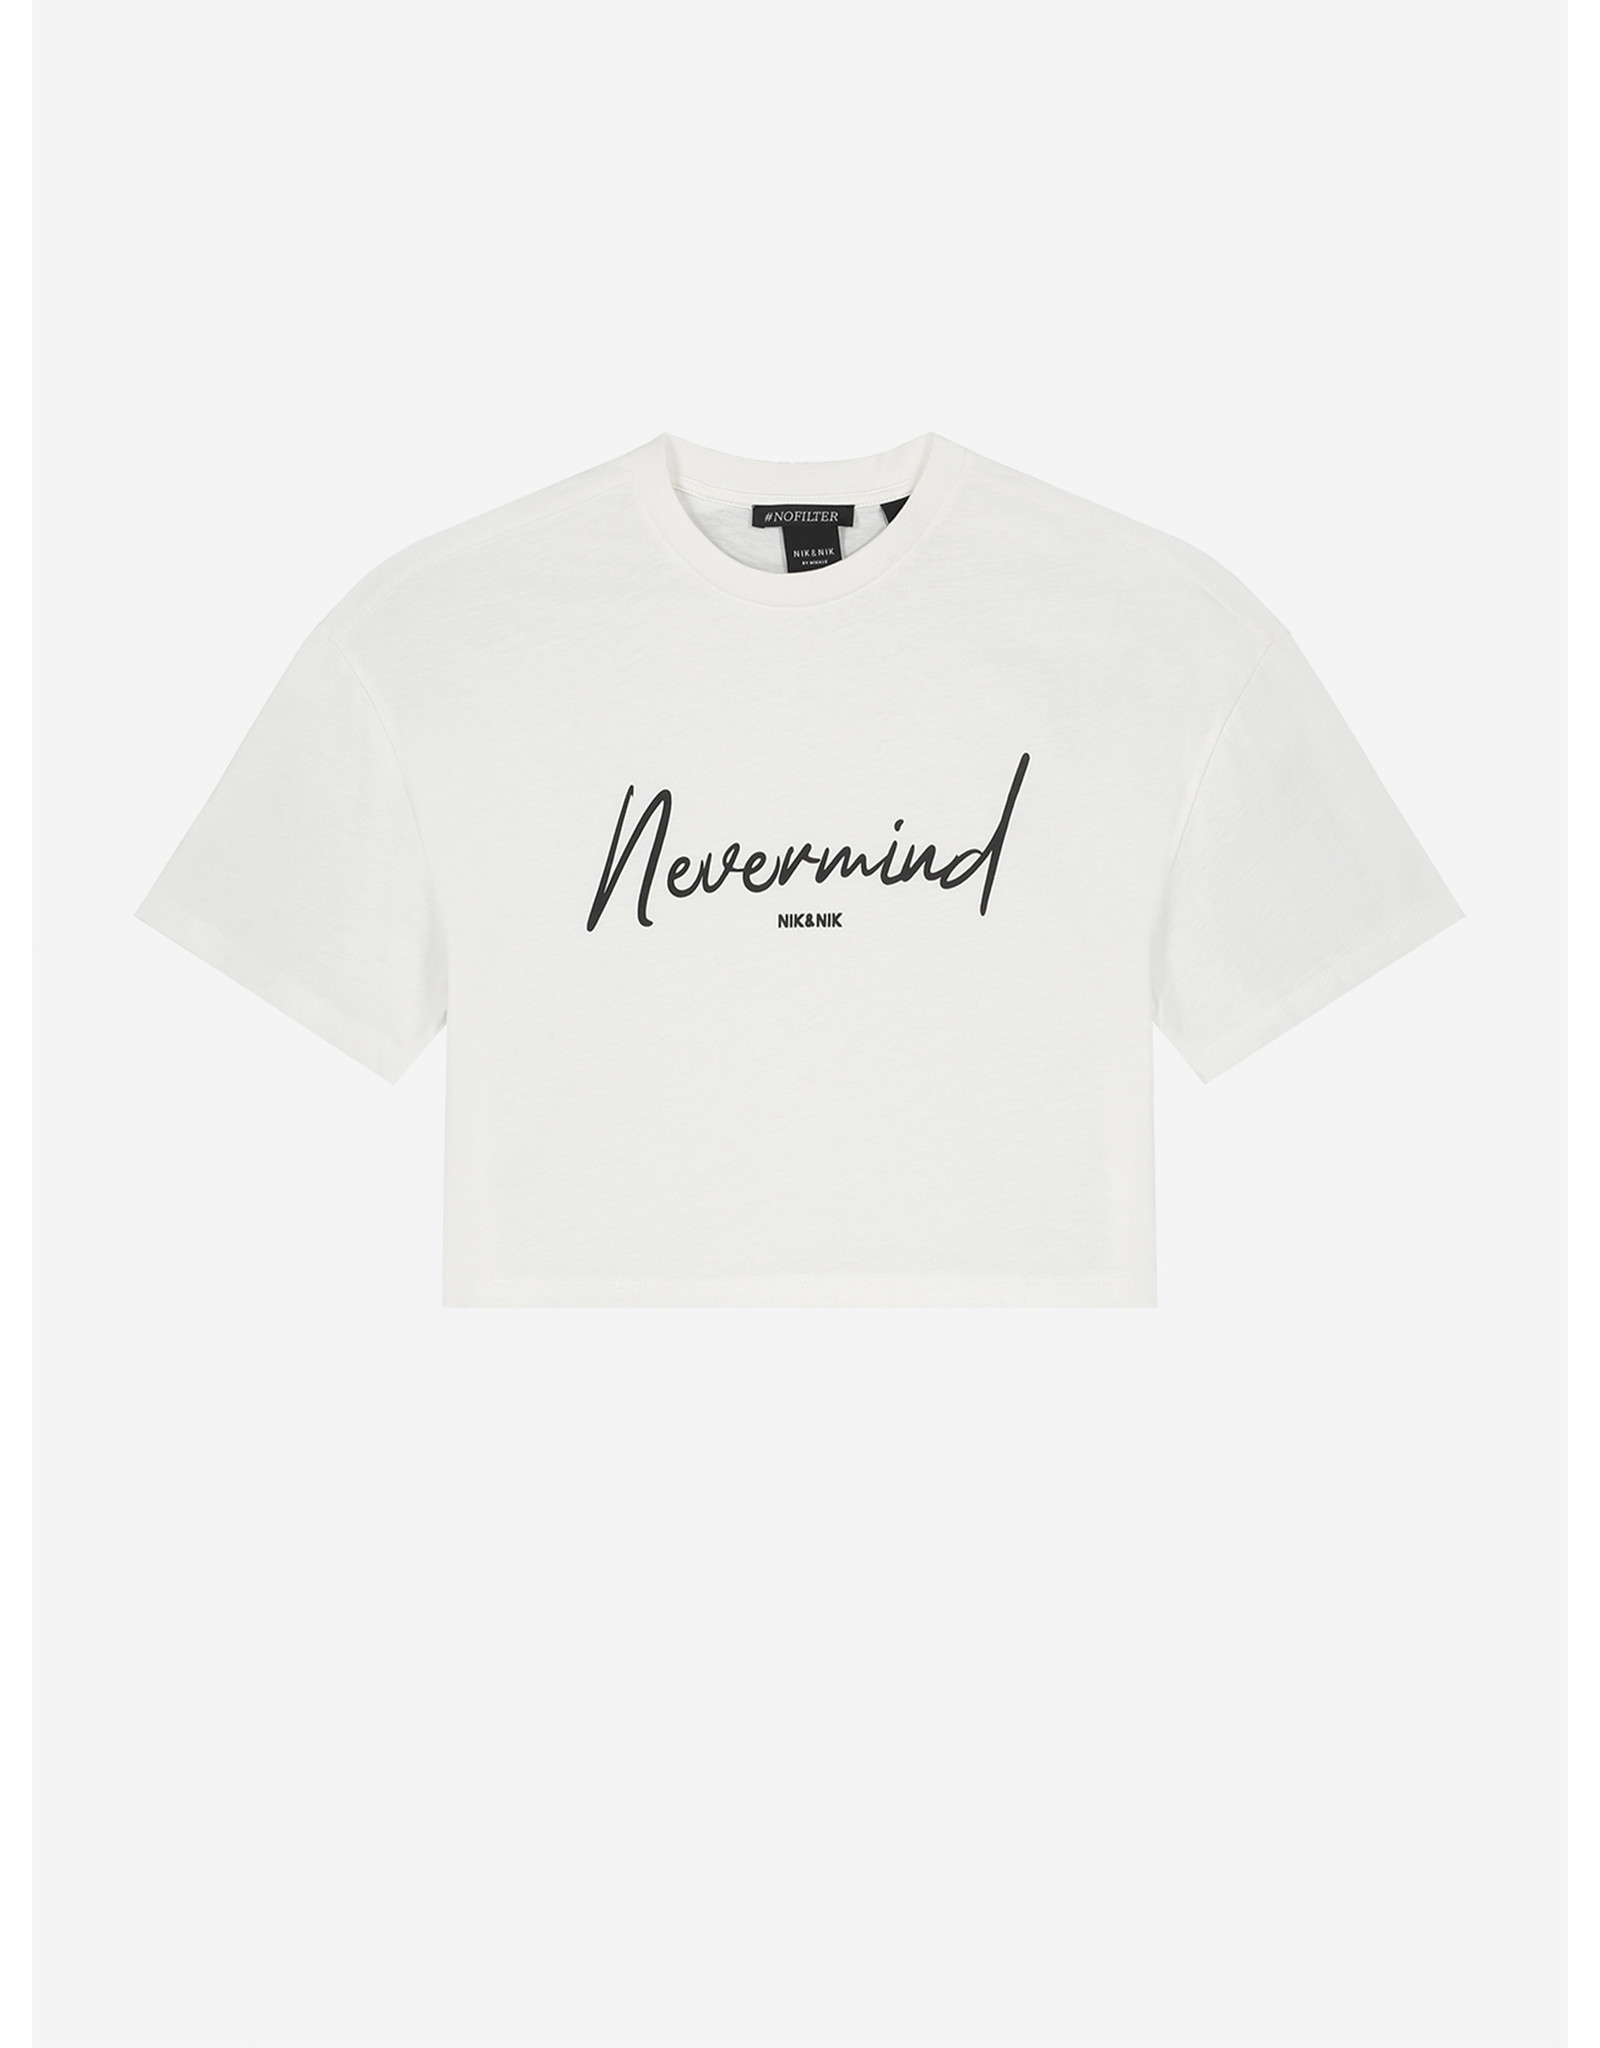 Nik&Nik NIK&NIK Nevermind T-shirt Off White mt 116